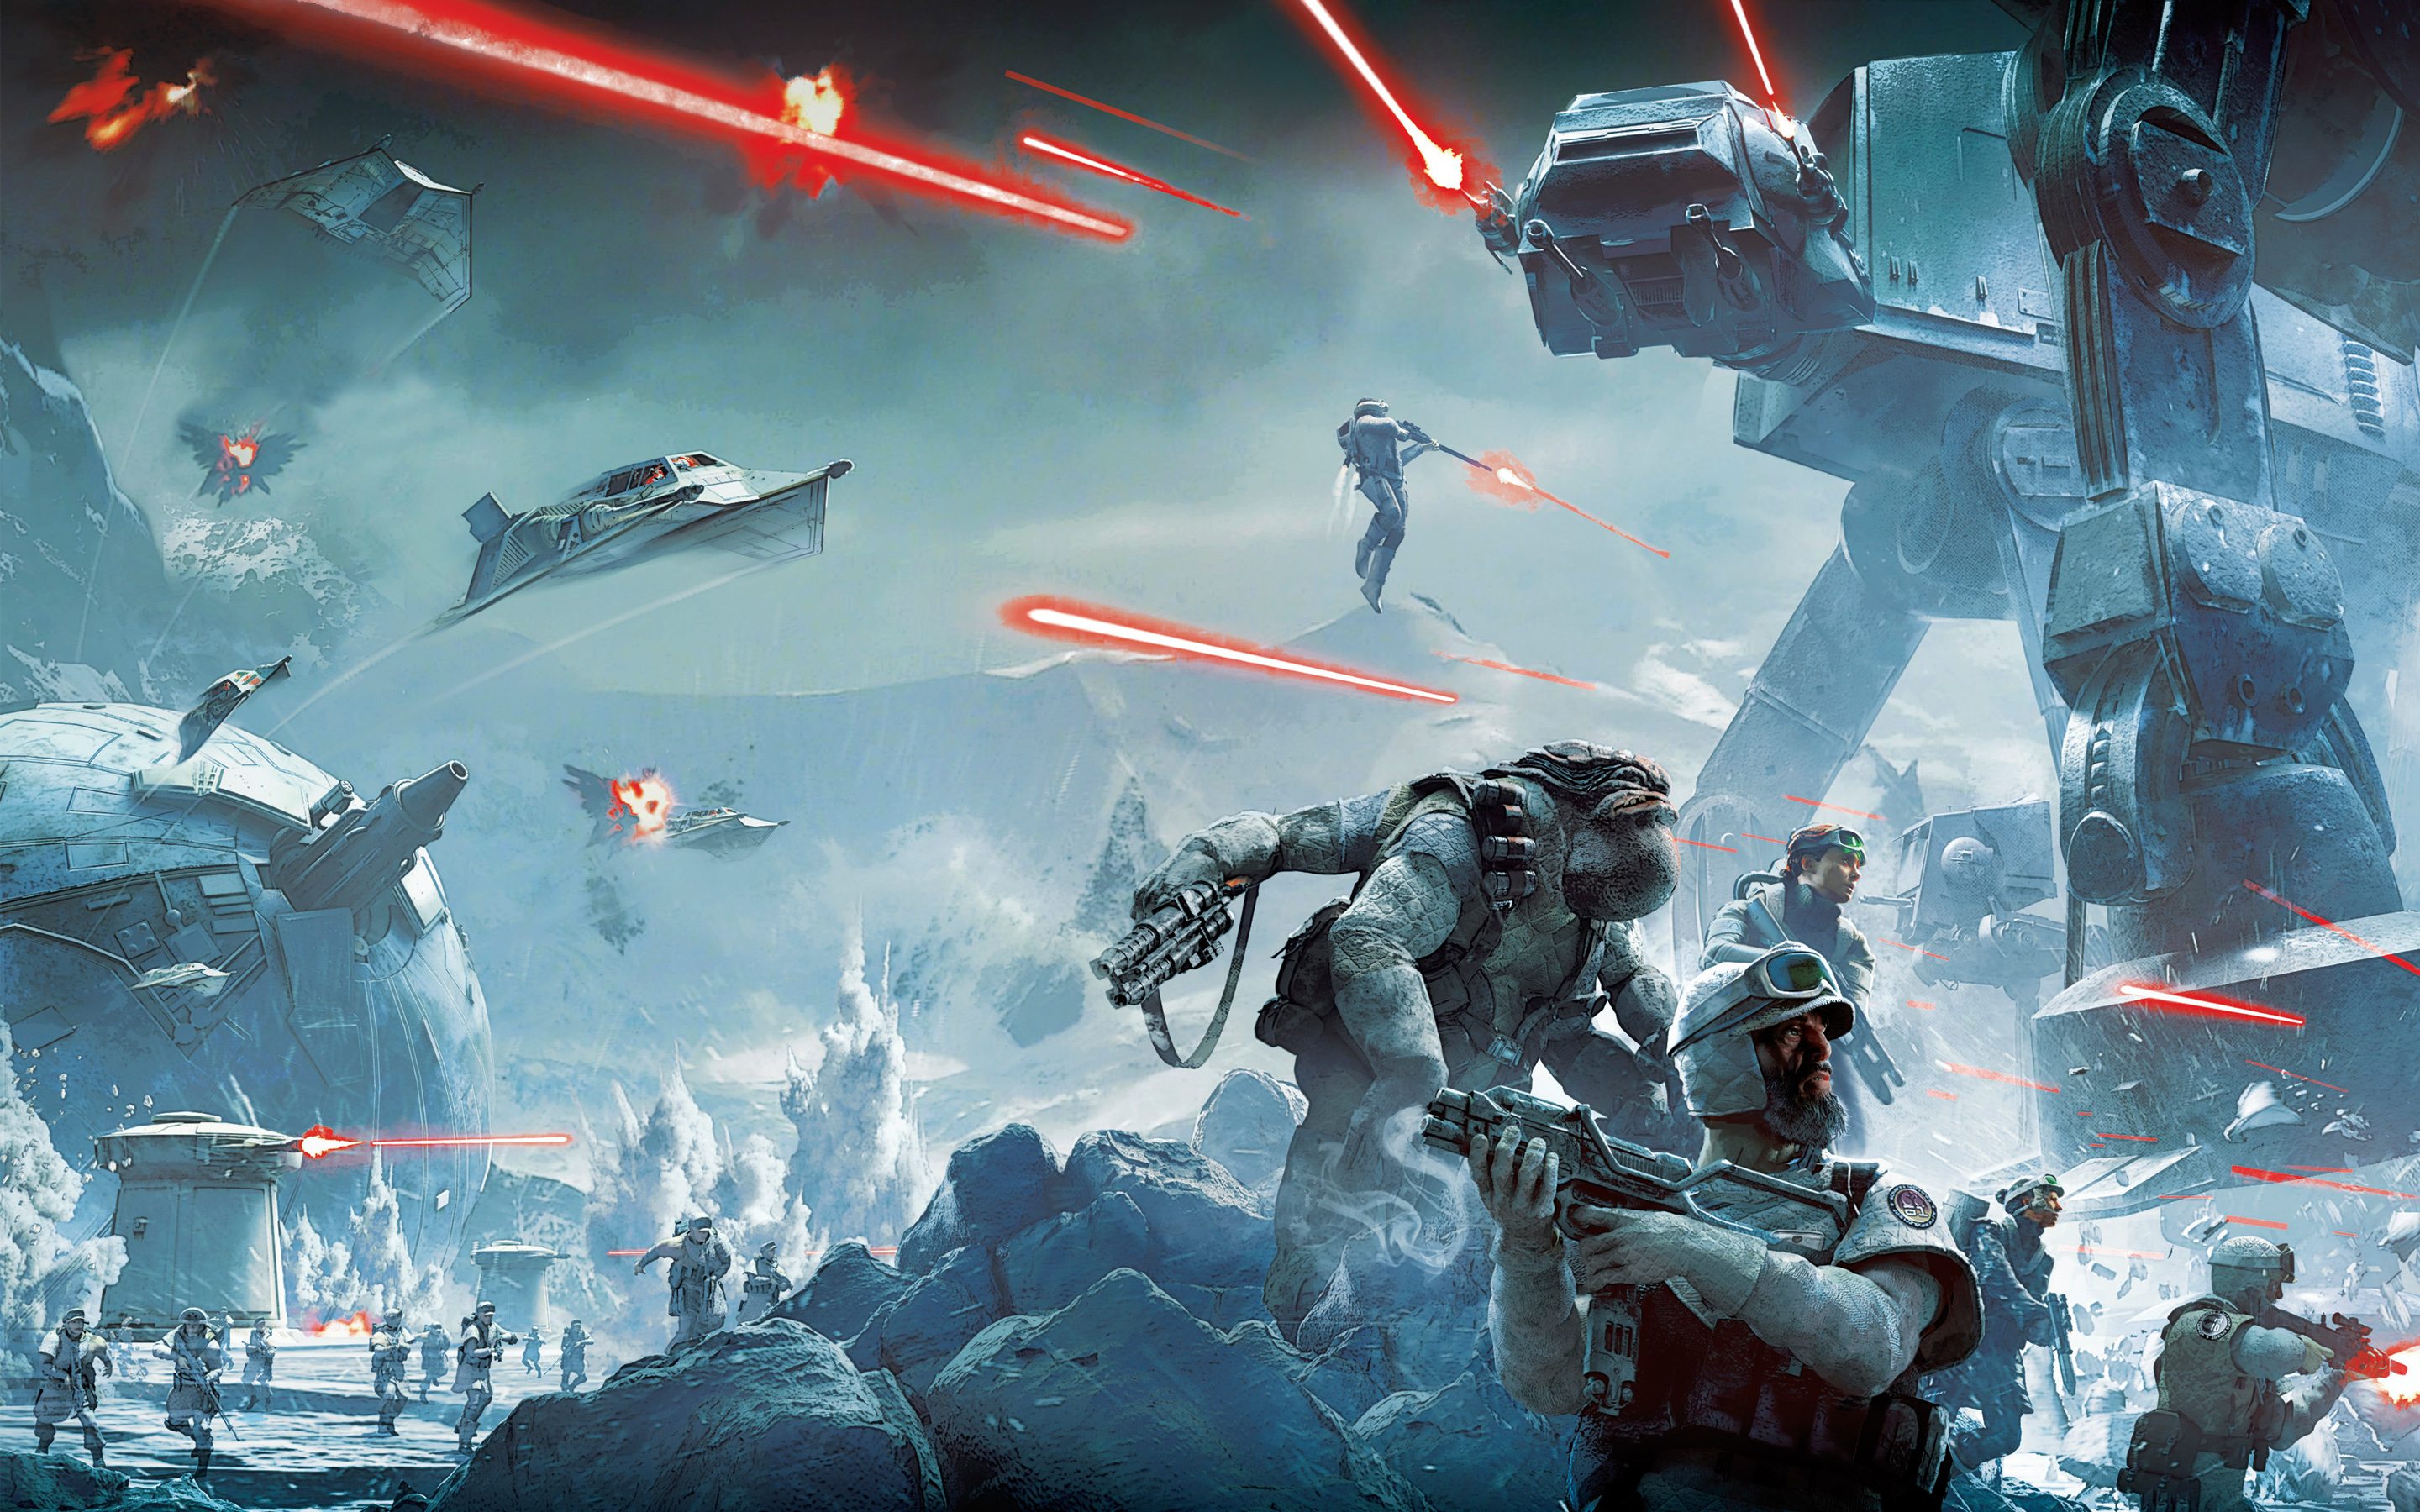 battlefront™ wallpapers, photos and desktop backgrounds up to 8k